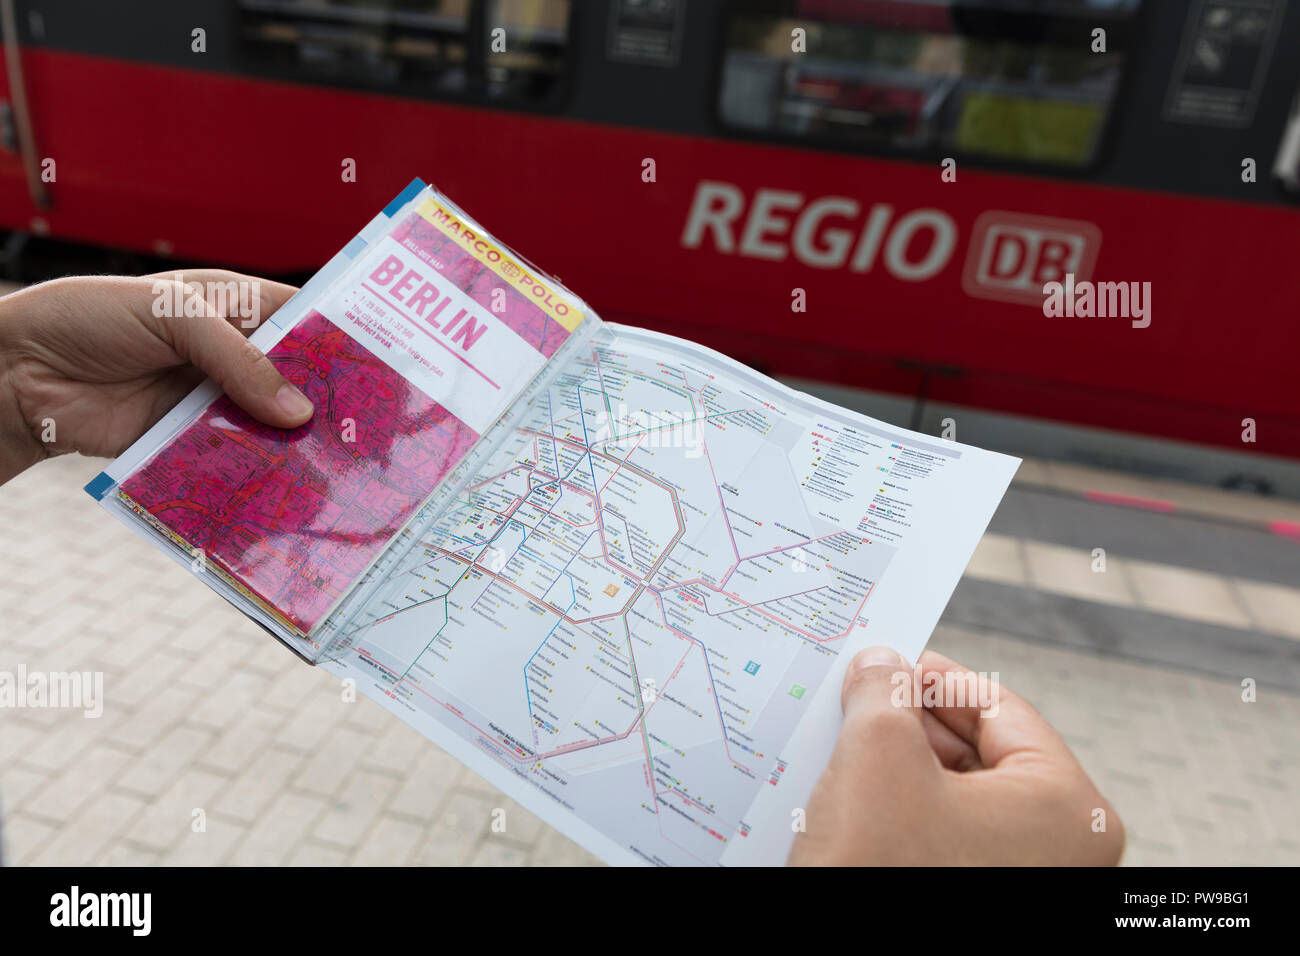 Potsdam, Berlin, Germany: 18th August 2018: Tourist looking at Marco Polo Guide and Public transport map Stock Photo